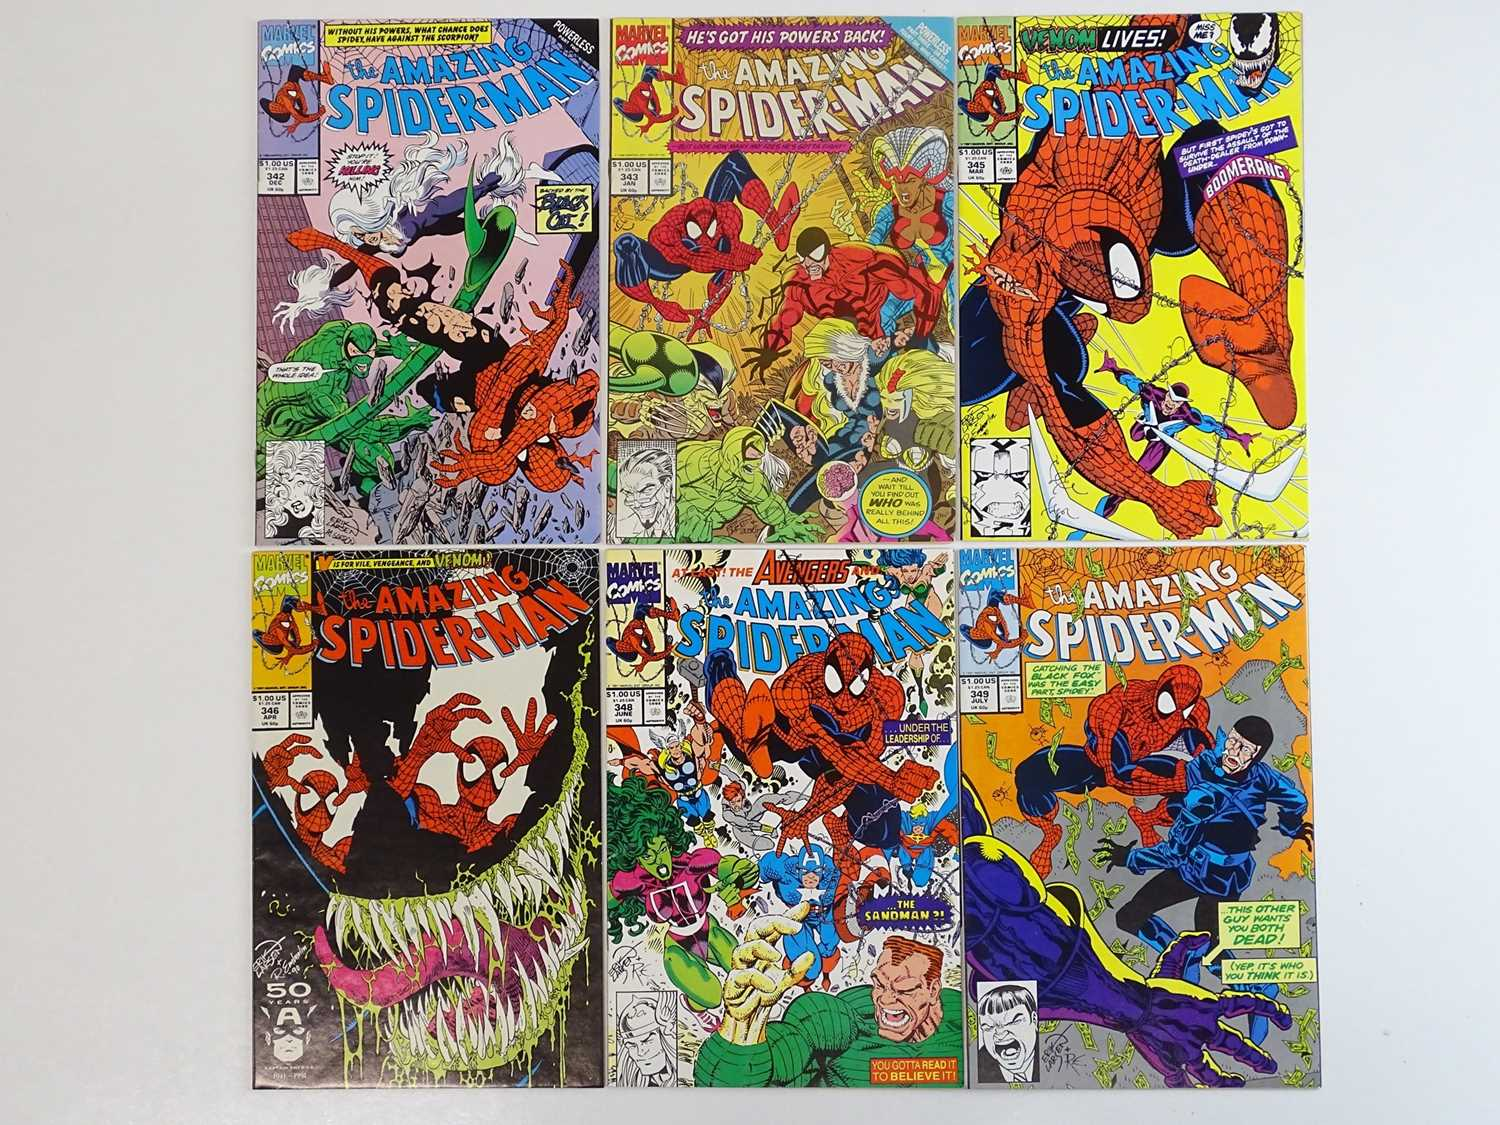 AMAZING SPIDER-MAN #342, 343, 345, 346, 348, 349 - (6 in Lot) - (1990/91 - MARVEL) - Includes Second